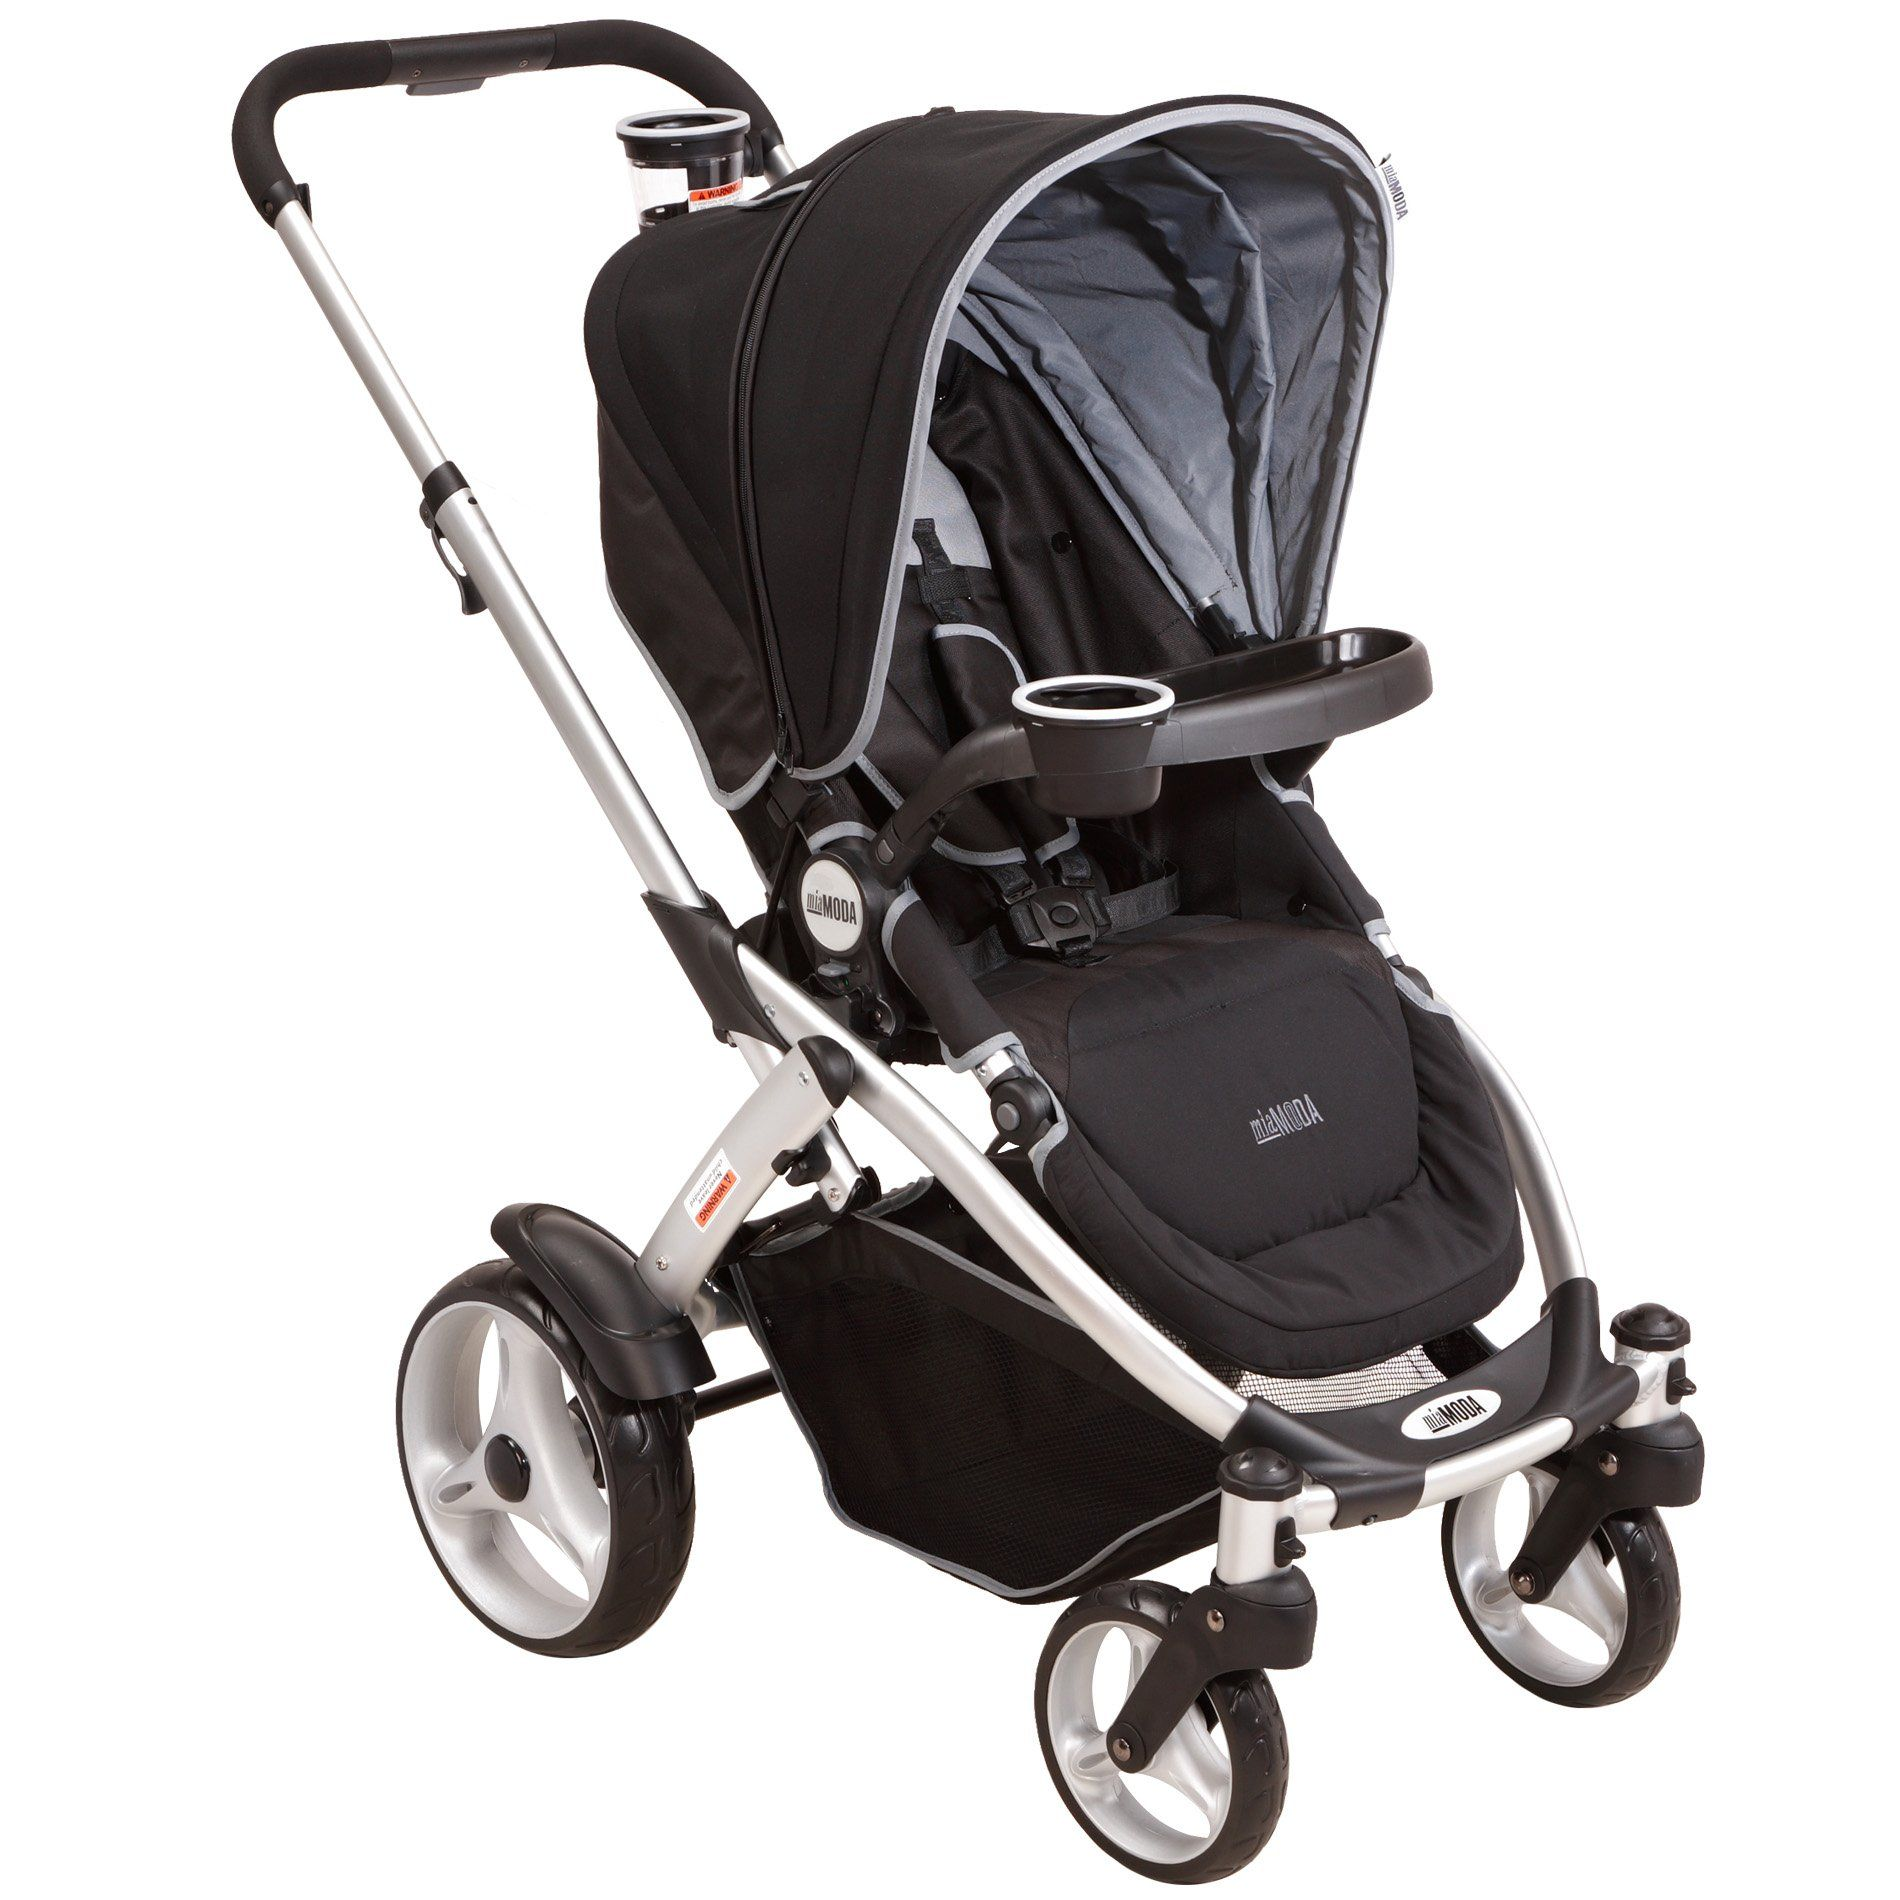 Robot Check | Stroller, Used strollers, Baby strollers